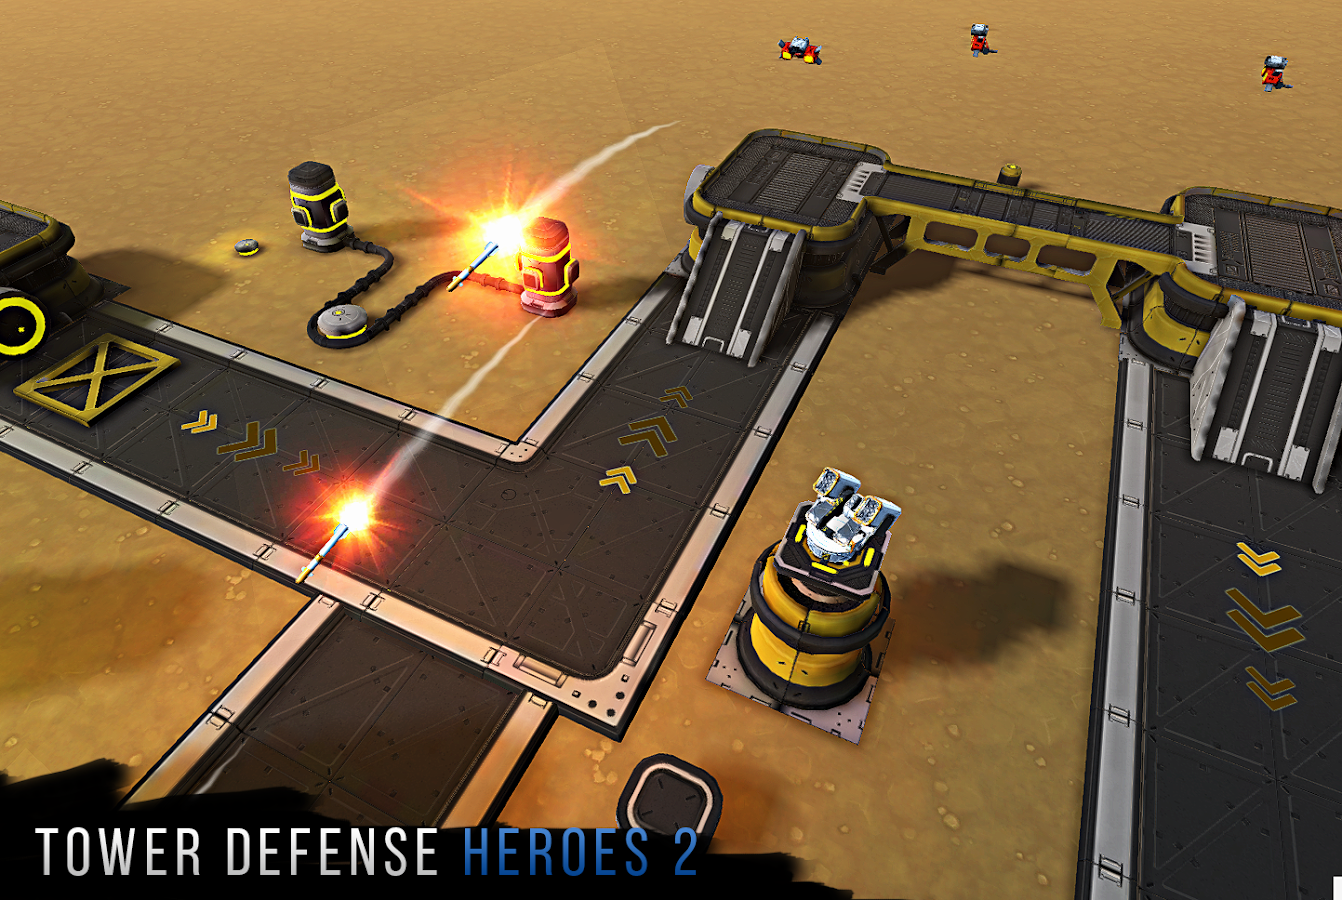 Tower Defense Heroes 2 Screenshot 17